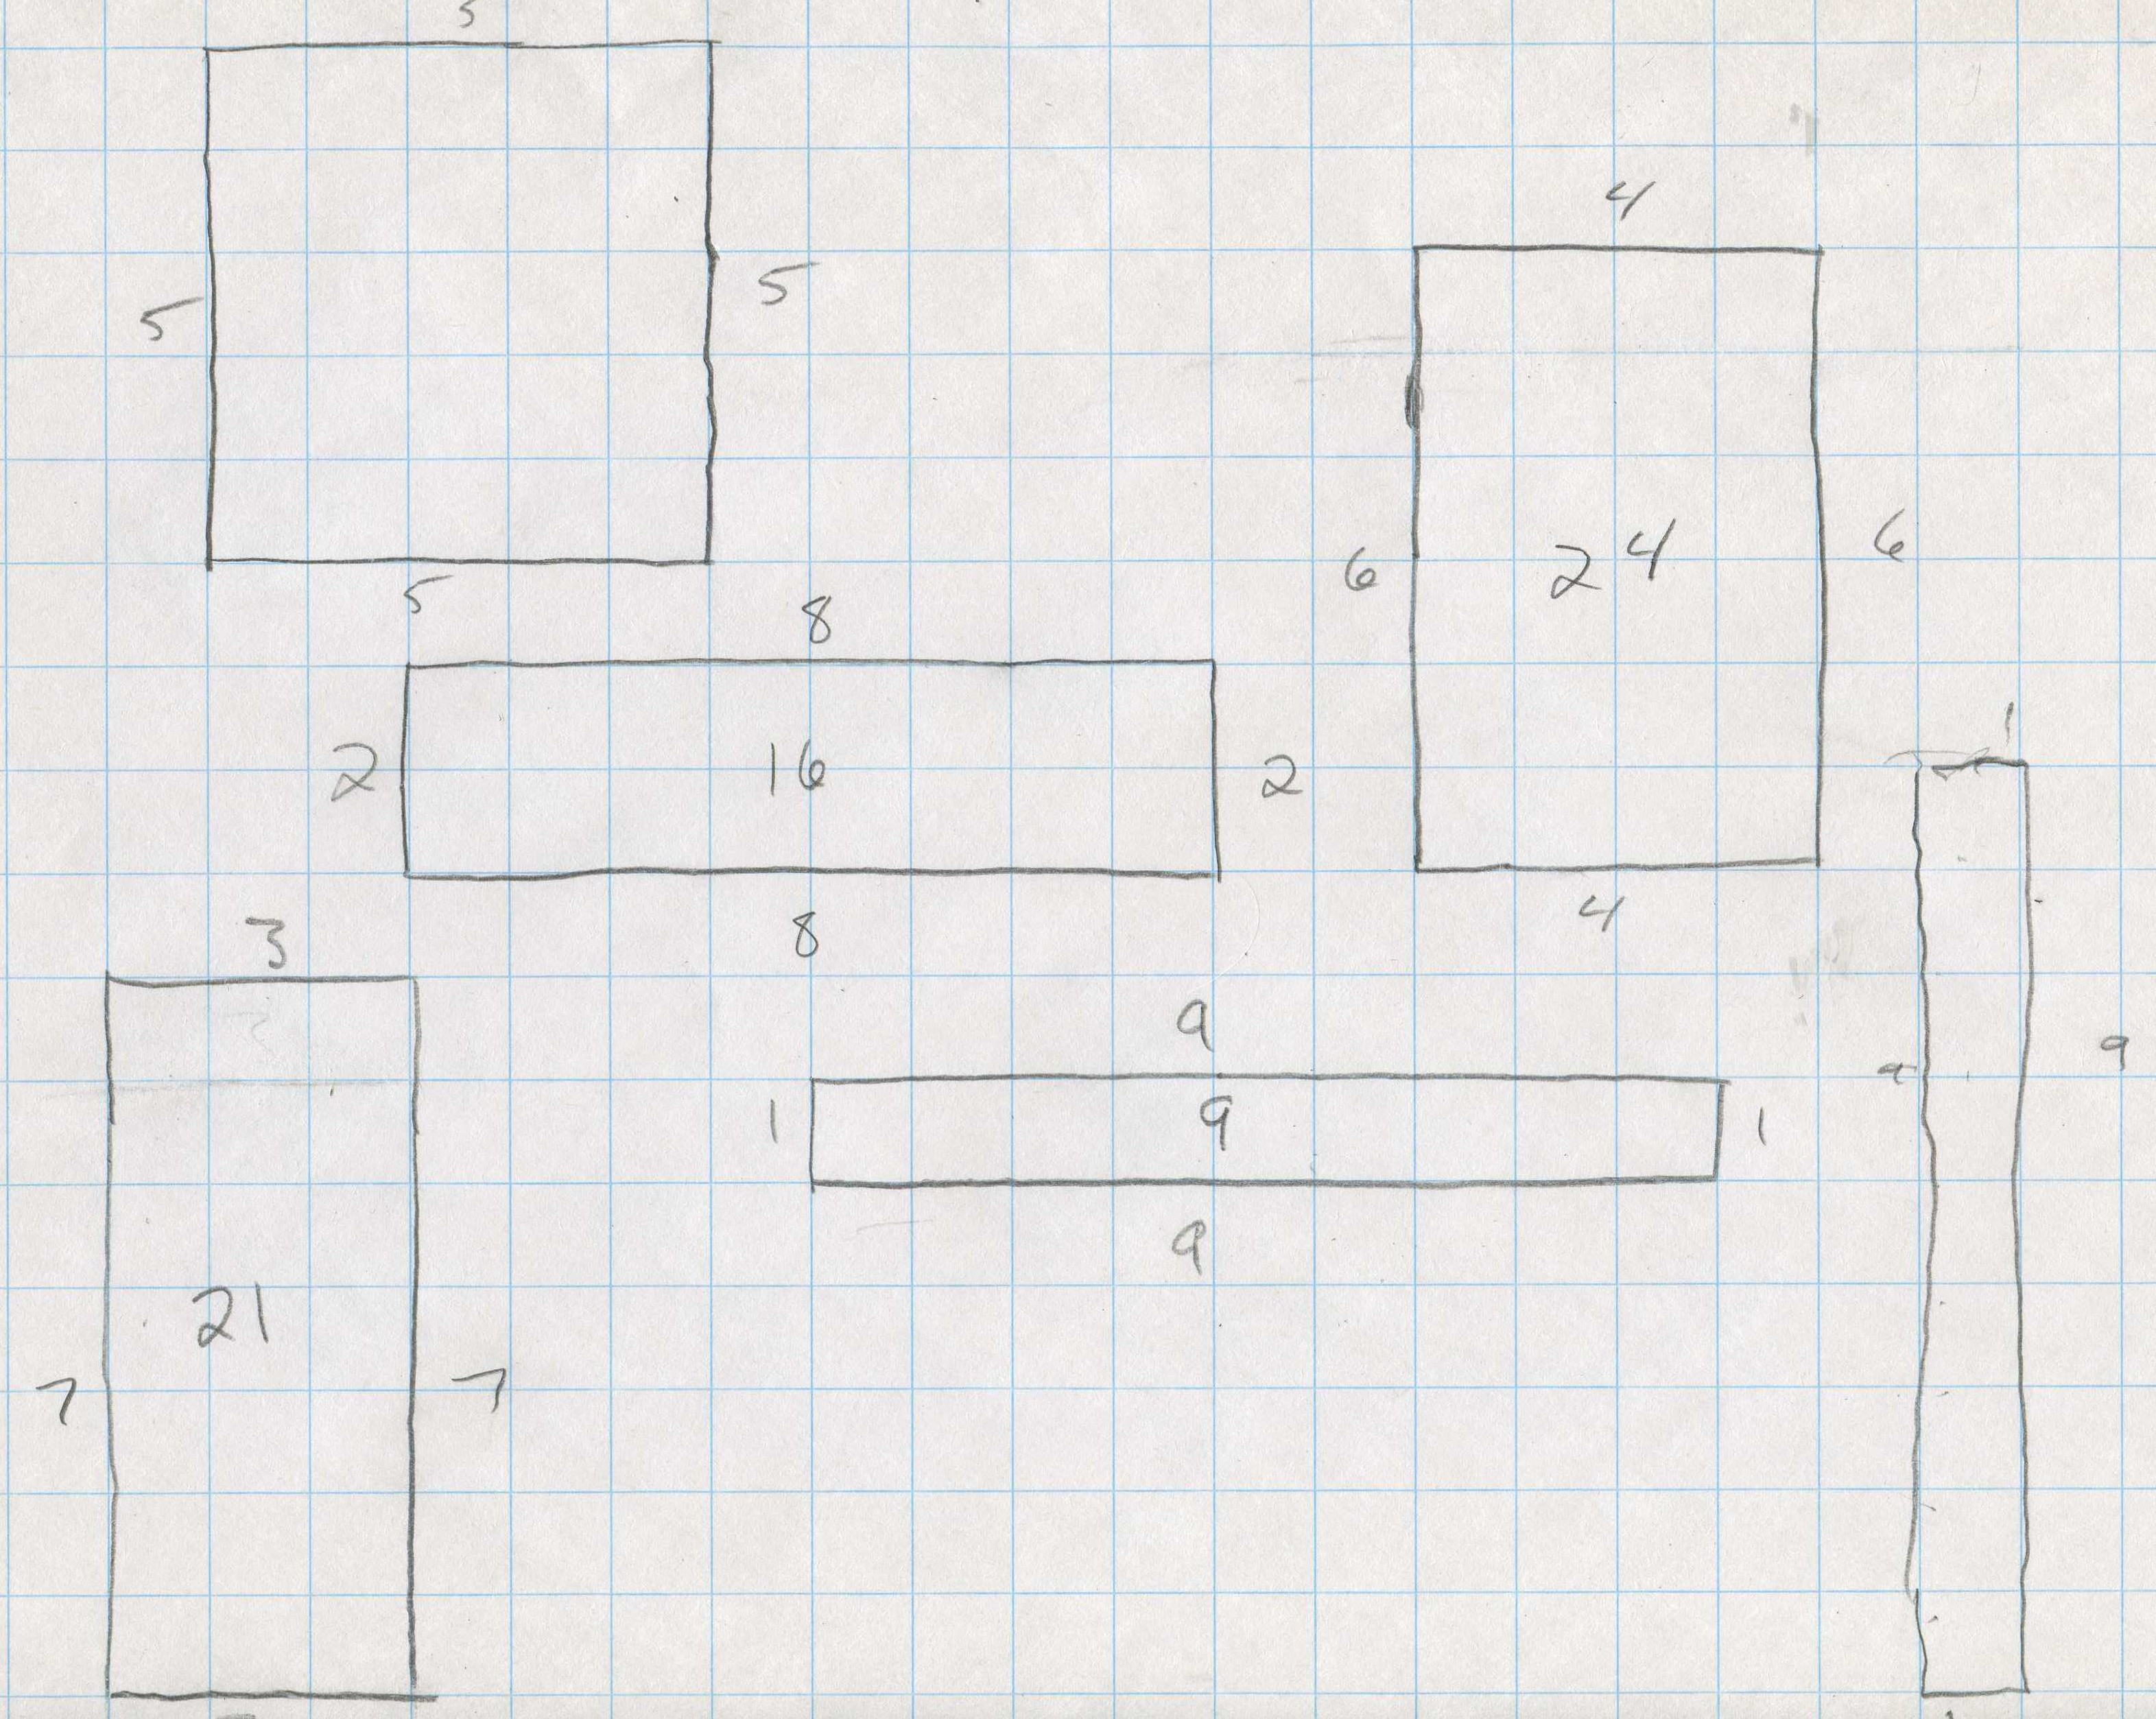 Then She Graphed The Length Vs Width Of The Rectangles And Found An  Equation For This